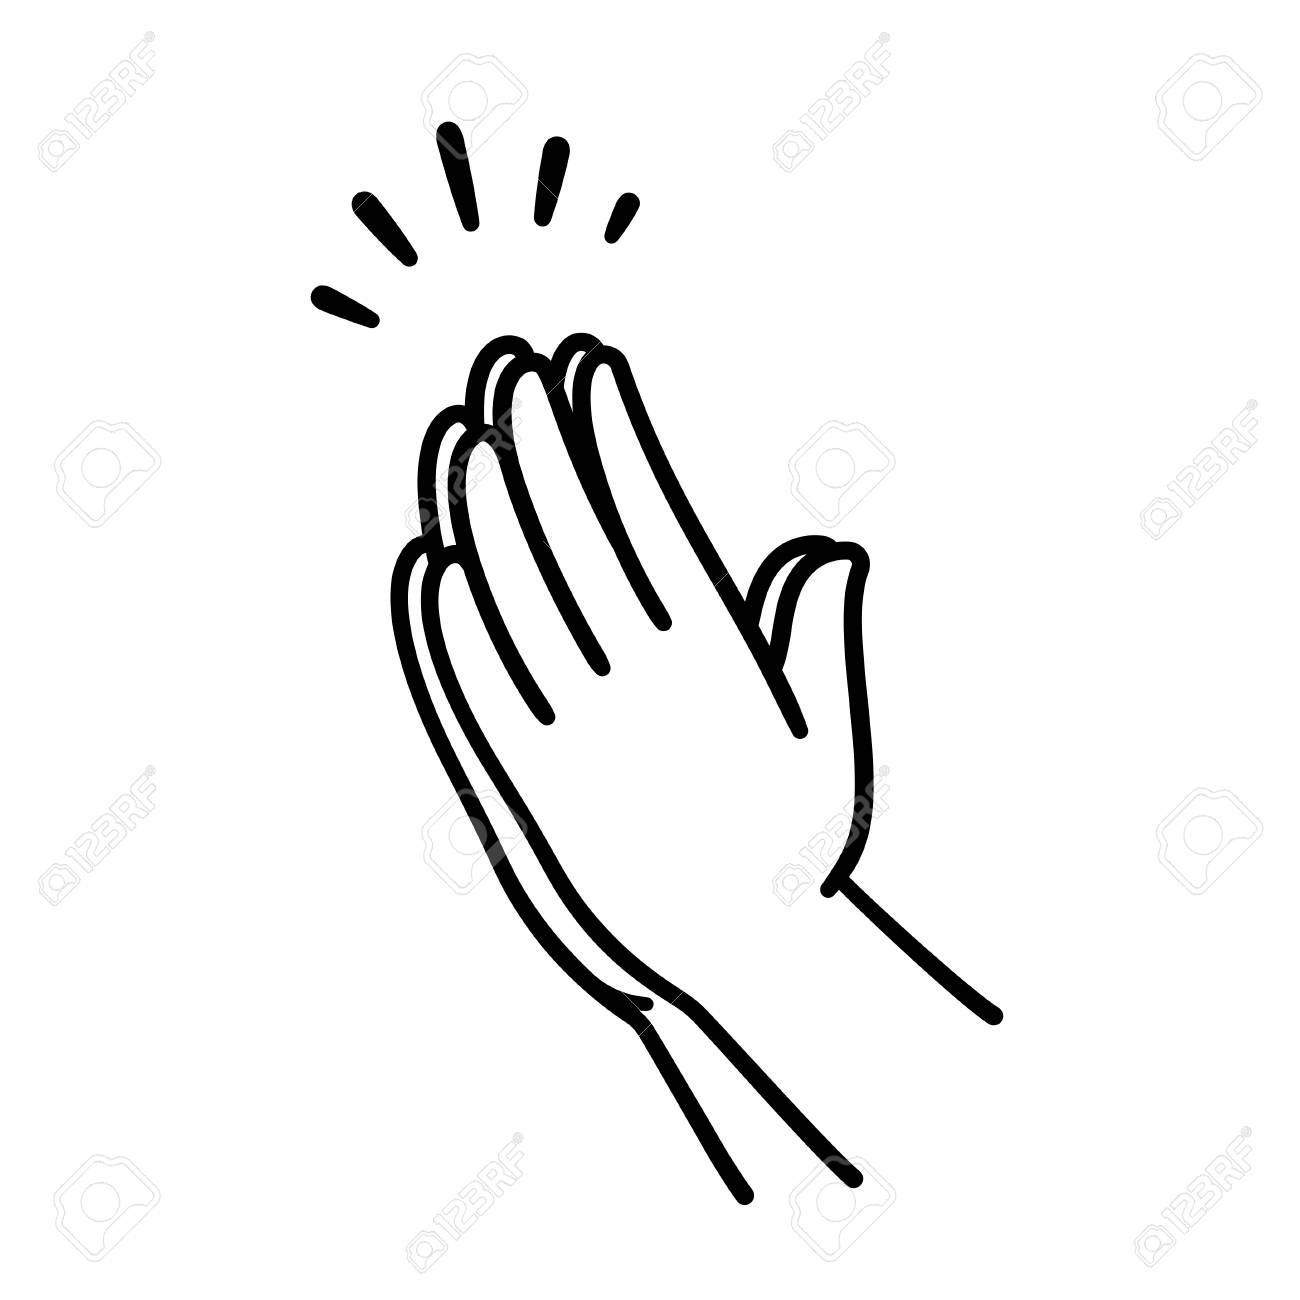 Praying hands drawing, simple line icon illustration. Hands folded in Christian prayer. - 101901204